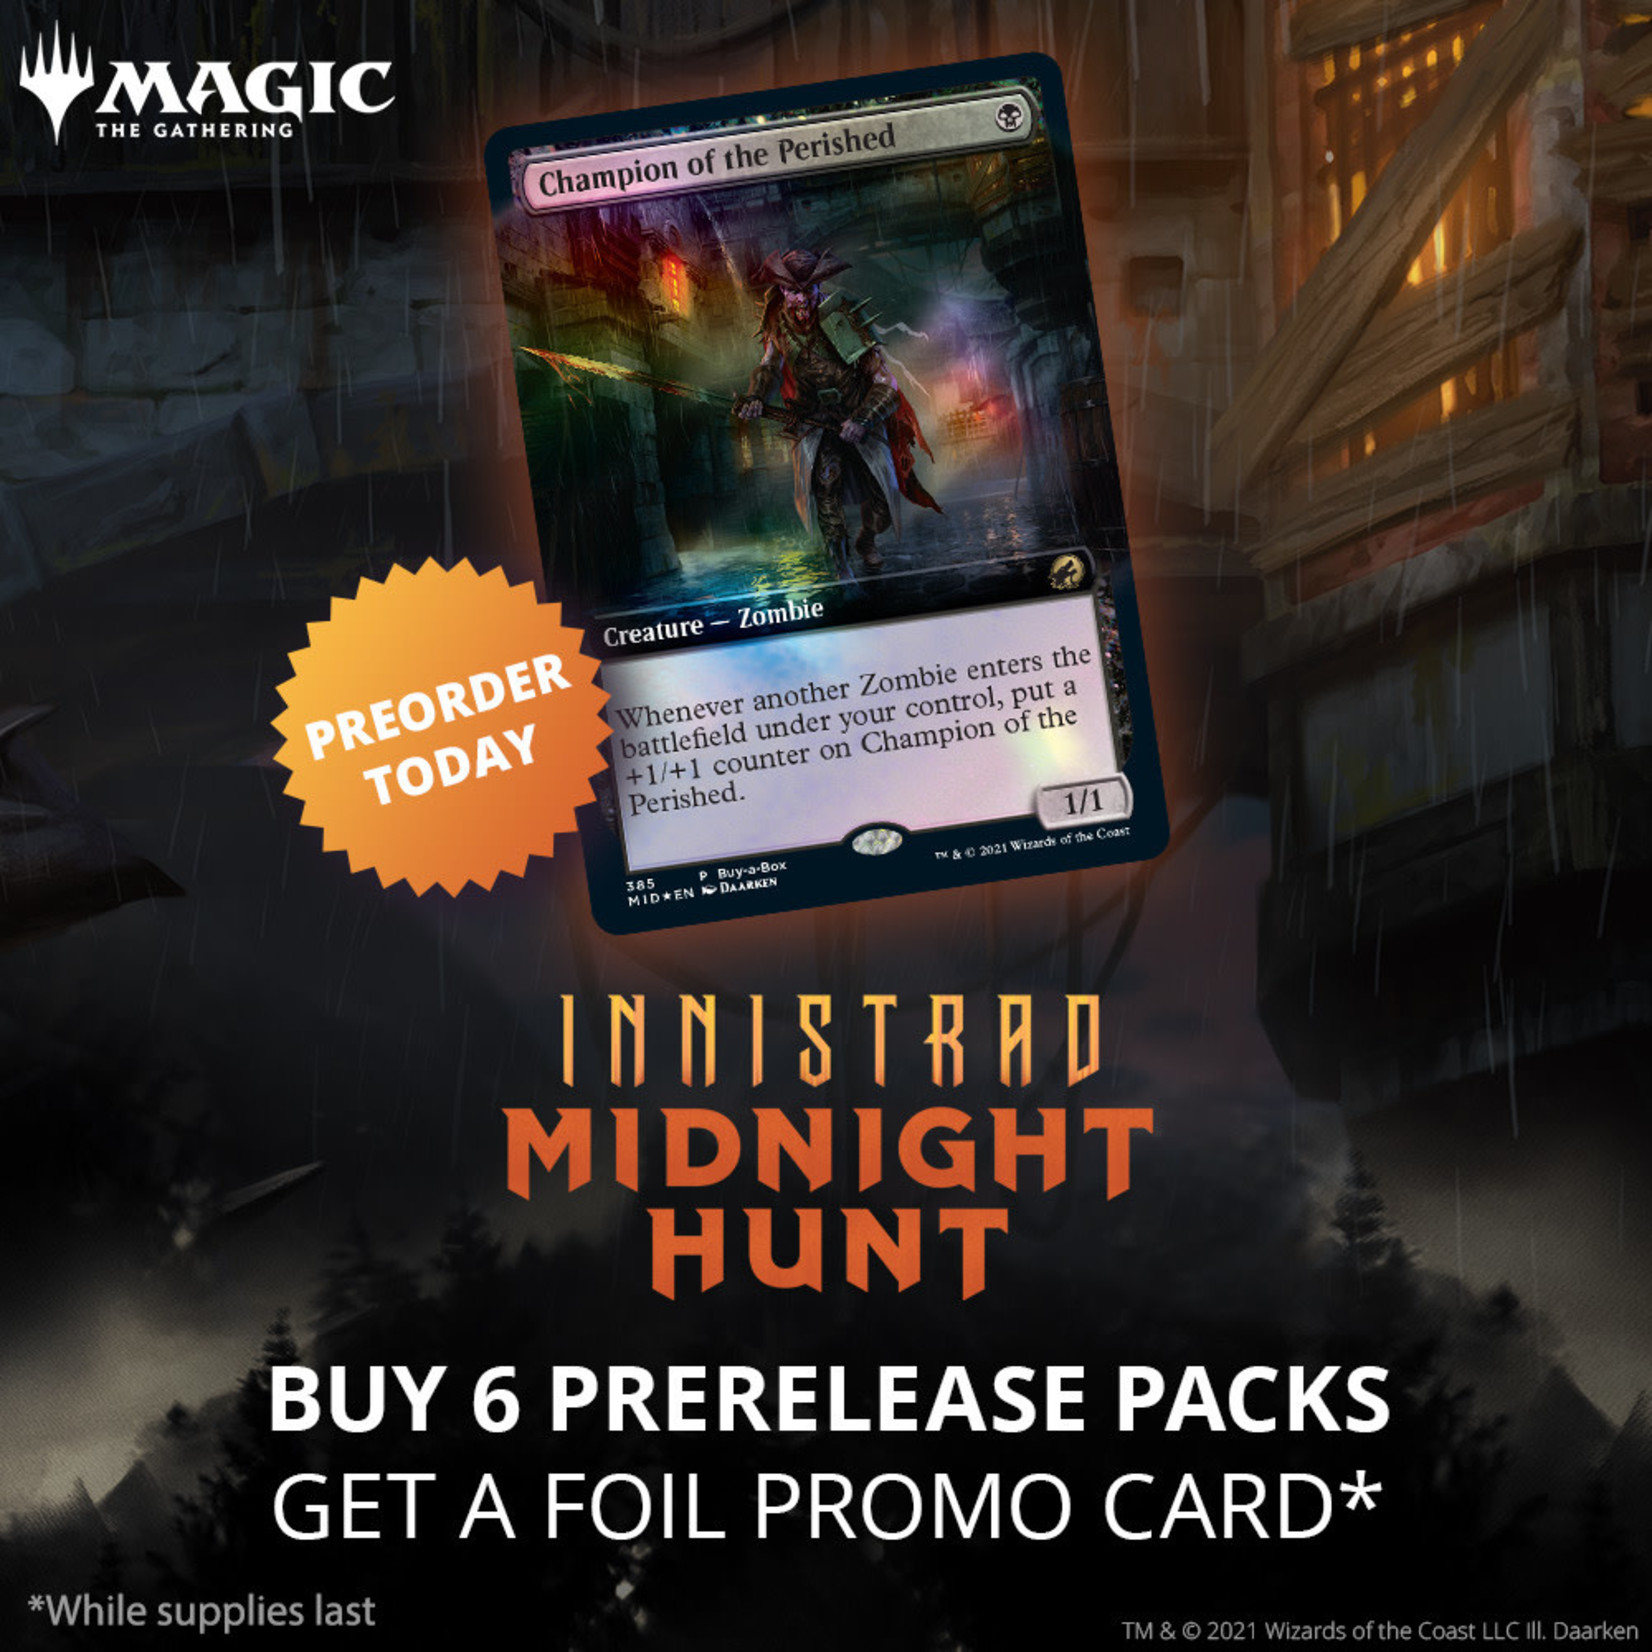 Magic: The Gathering Magic: The Gathering - Innistrad: Midnight Hunt Prerelease Pack + 2 Free Set Booster Packs